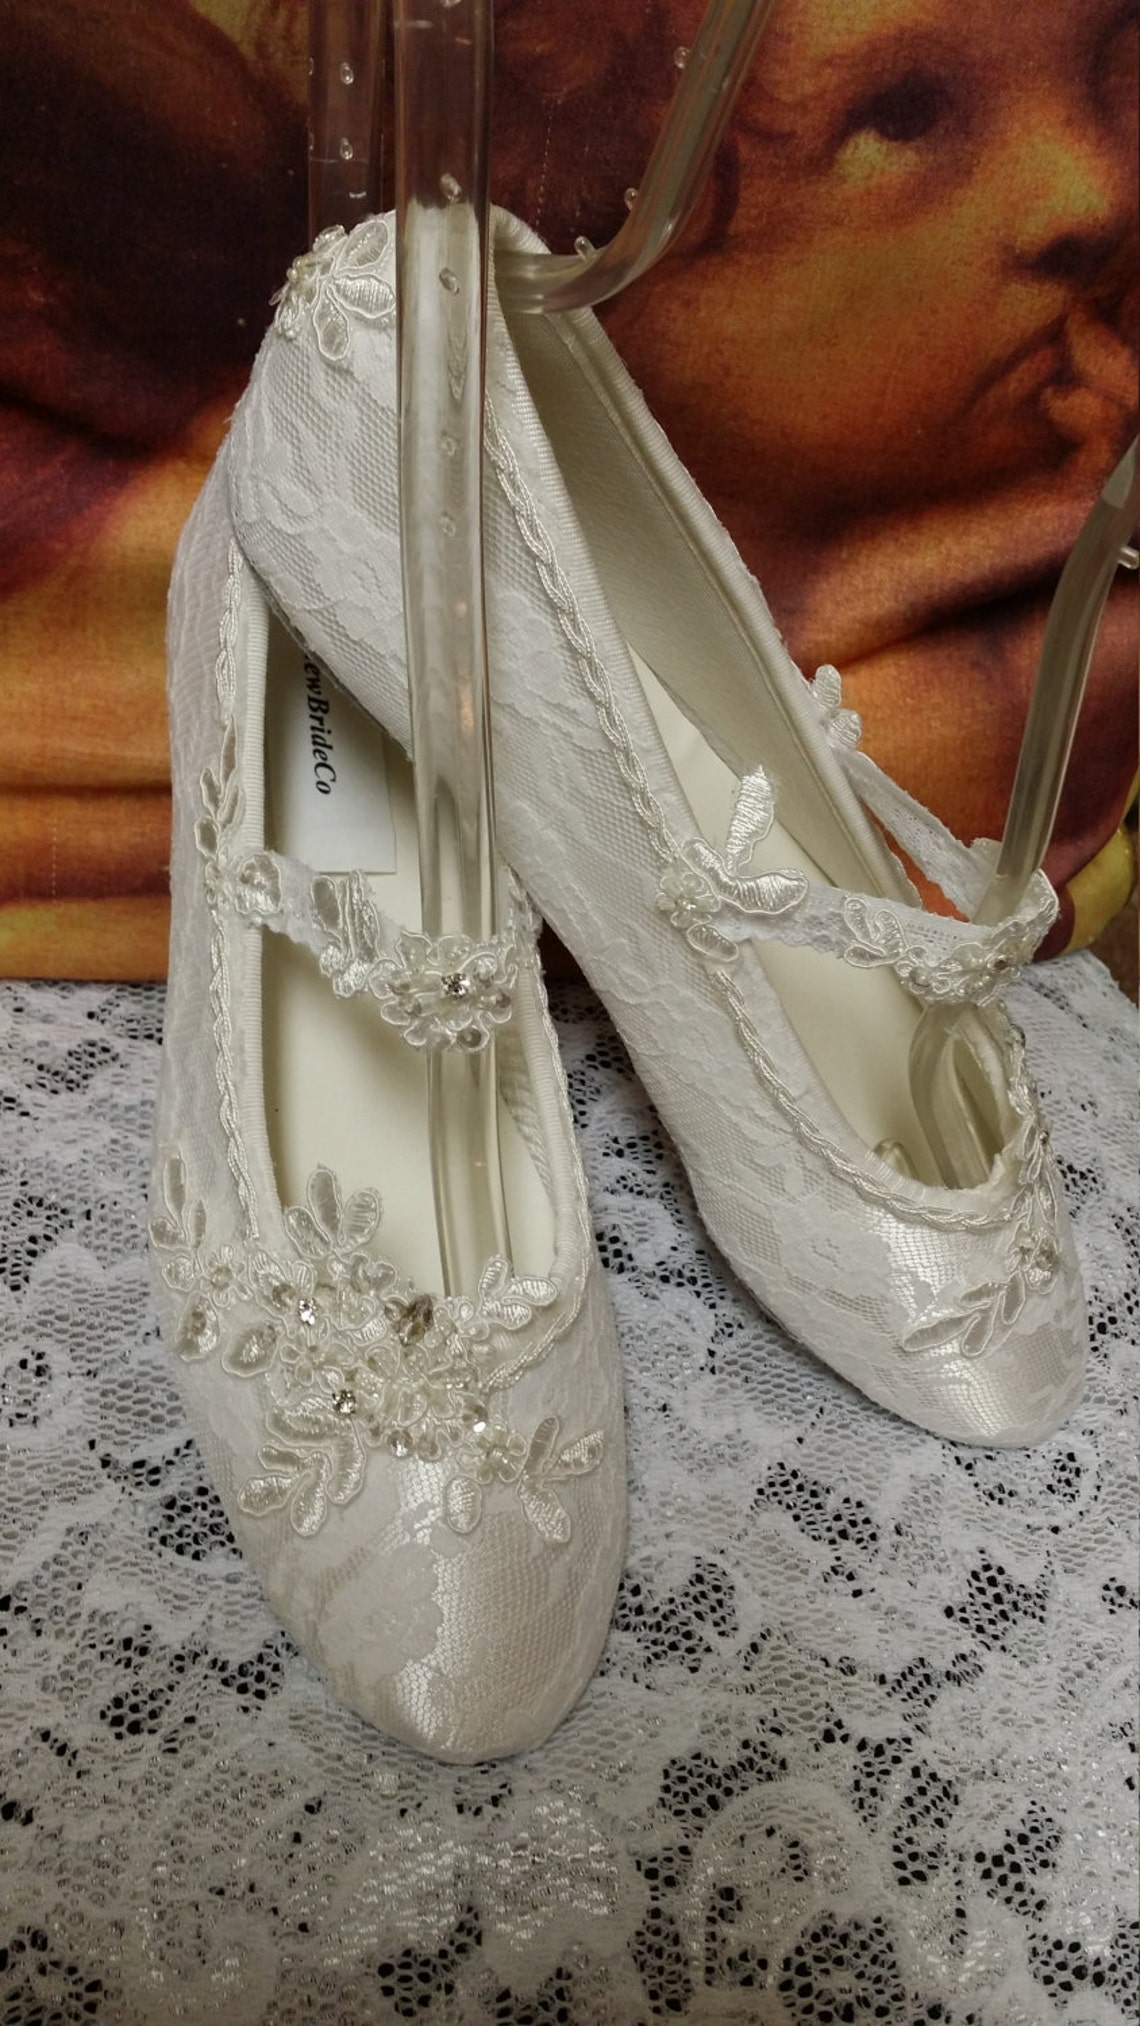 Off-white and Ivory Lace Wedding Flats Shoe Vintage inspired,Old Hollywood,Great Gatsby Style, Art Devo Nouveau, Romantic, Renaissance